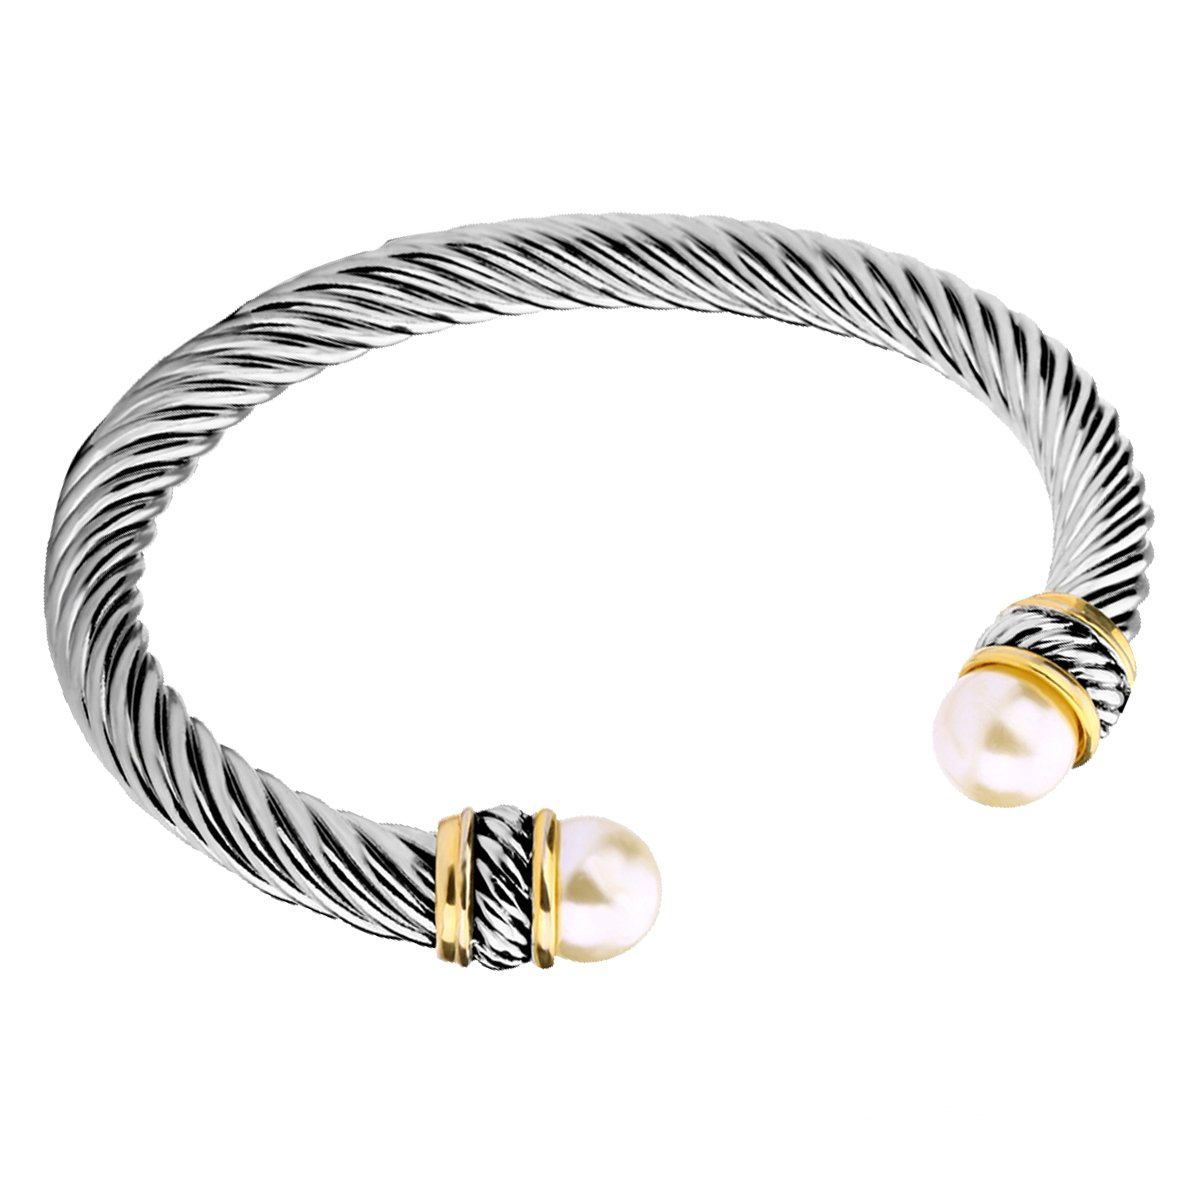 UNY Fashion jewelry Brand Cable Wire Bangle Elegant Beautiful Imitation Pearl Valentine Mothers day Gift B07CKZBPJL_US